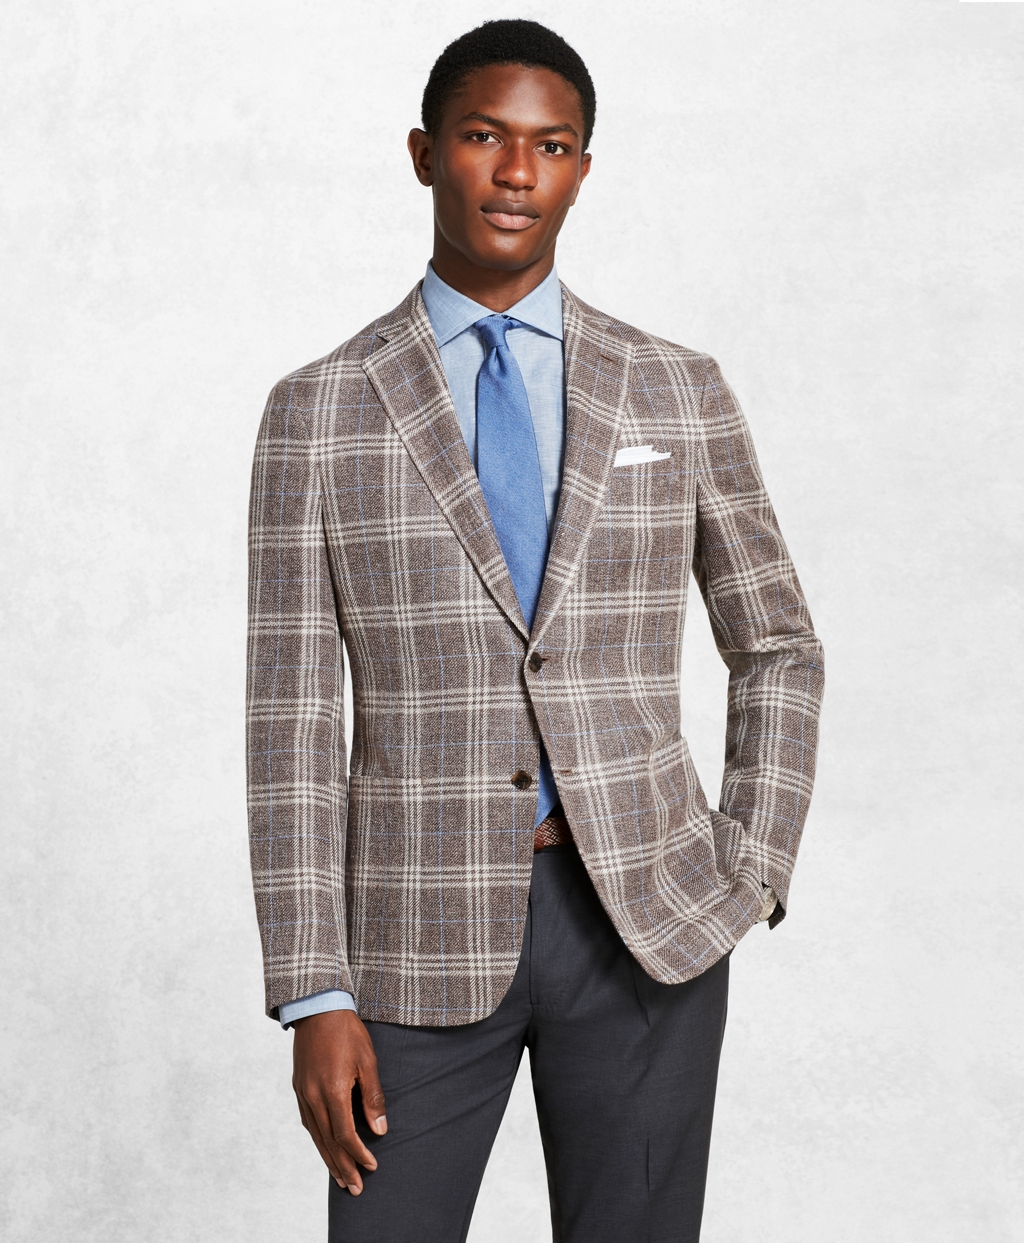 Men's Vintage Style Suits, Classic Suits Brooks Brothers Mens Golden Fleece Checked Twill Sport Coat $898.80 AT vintagedancer.com